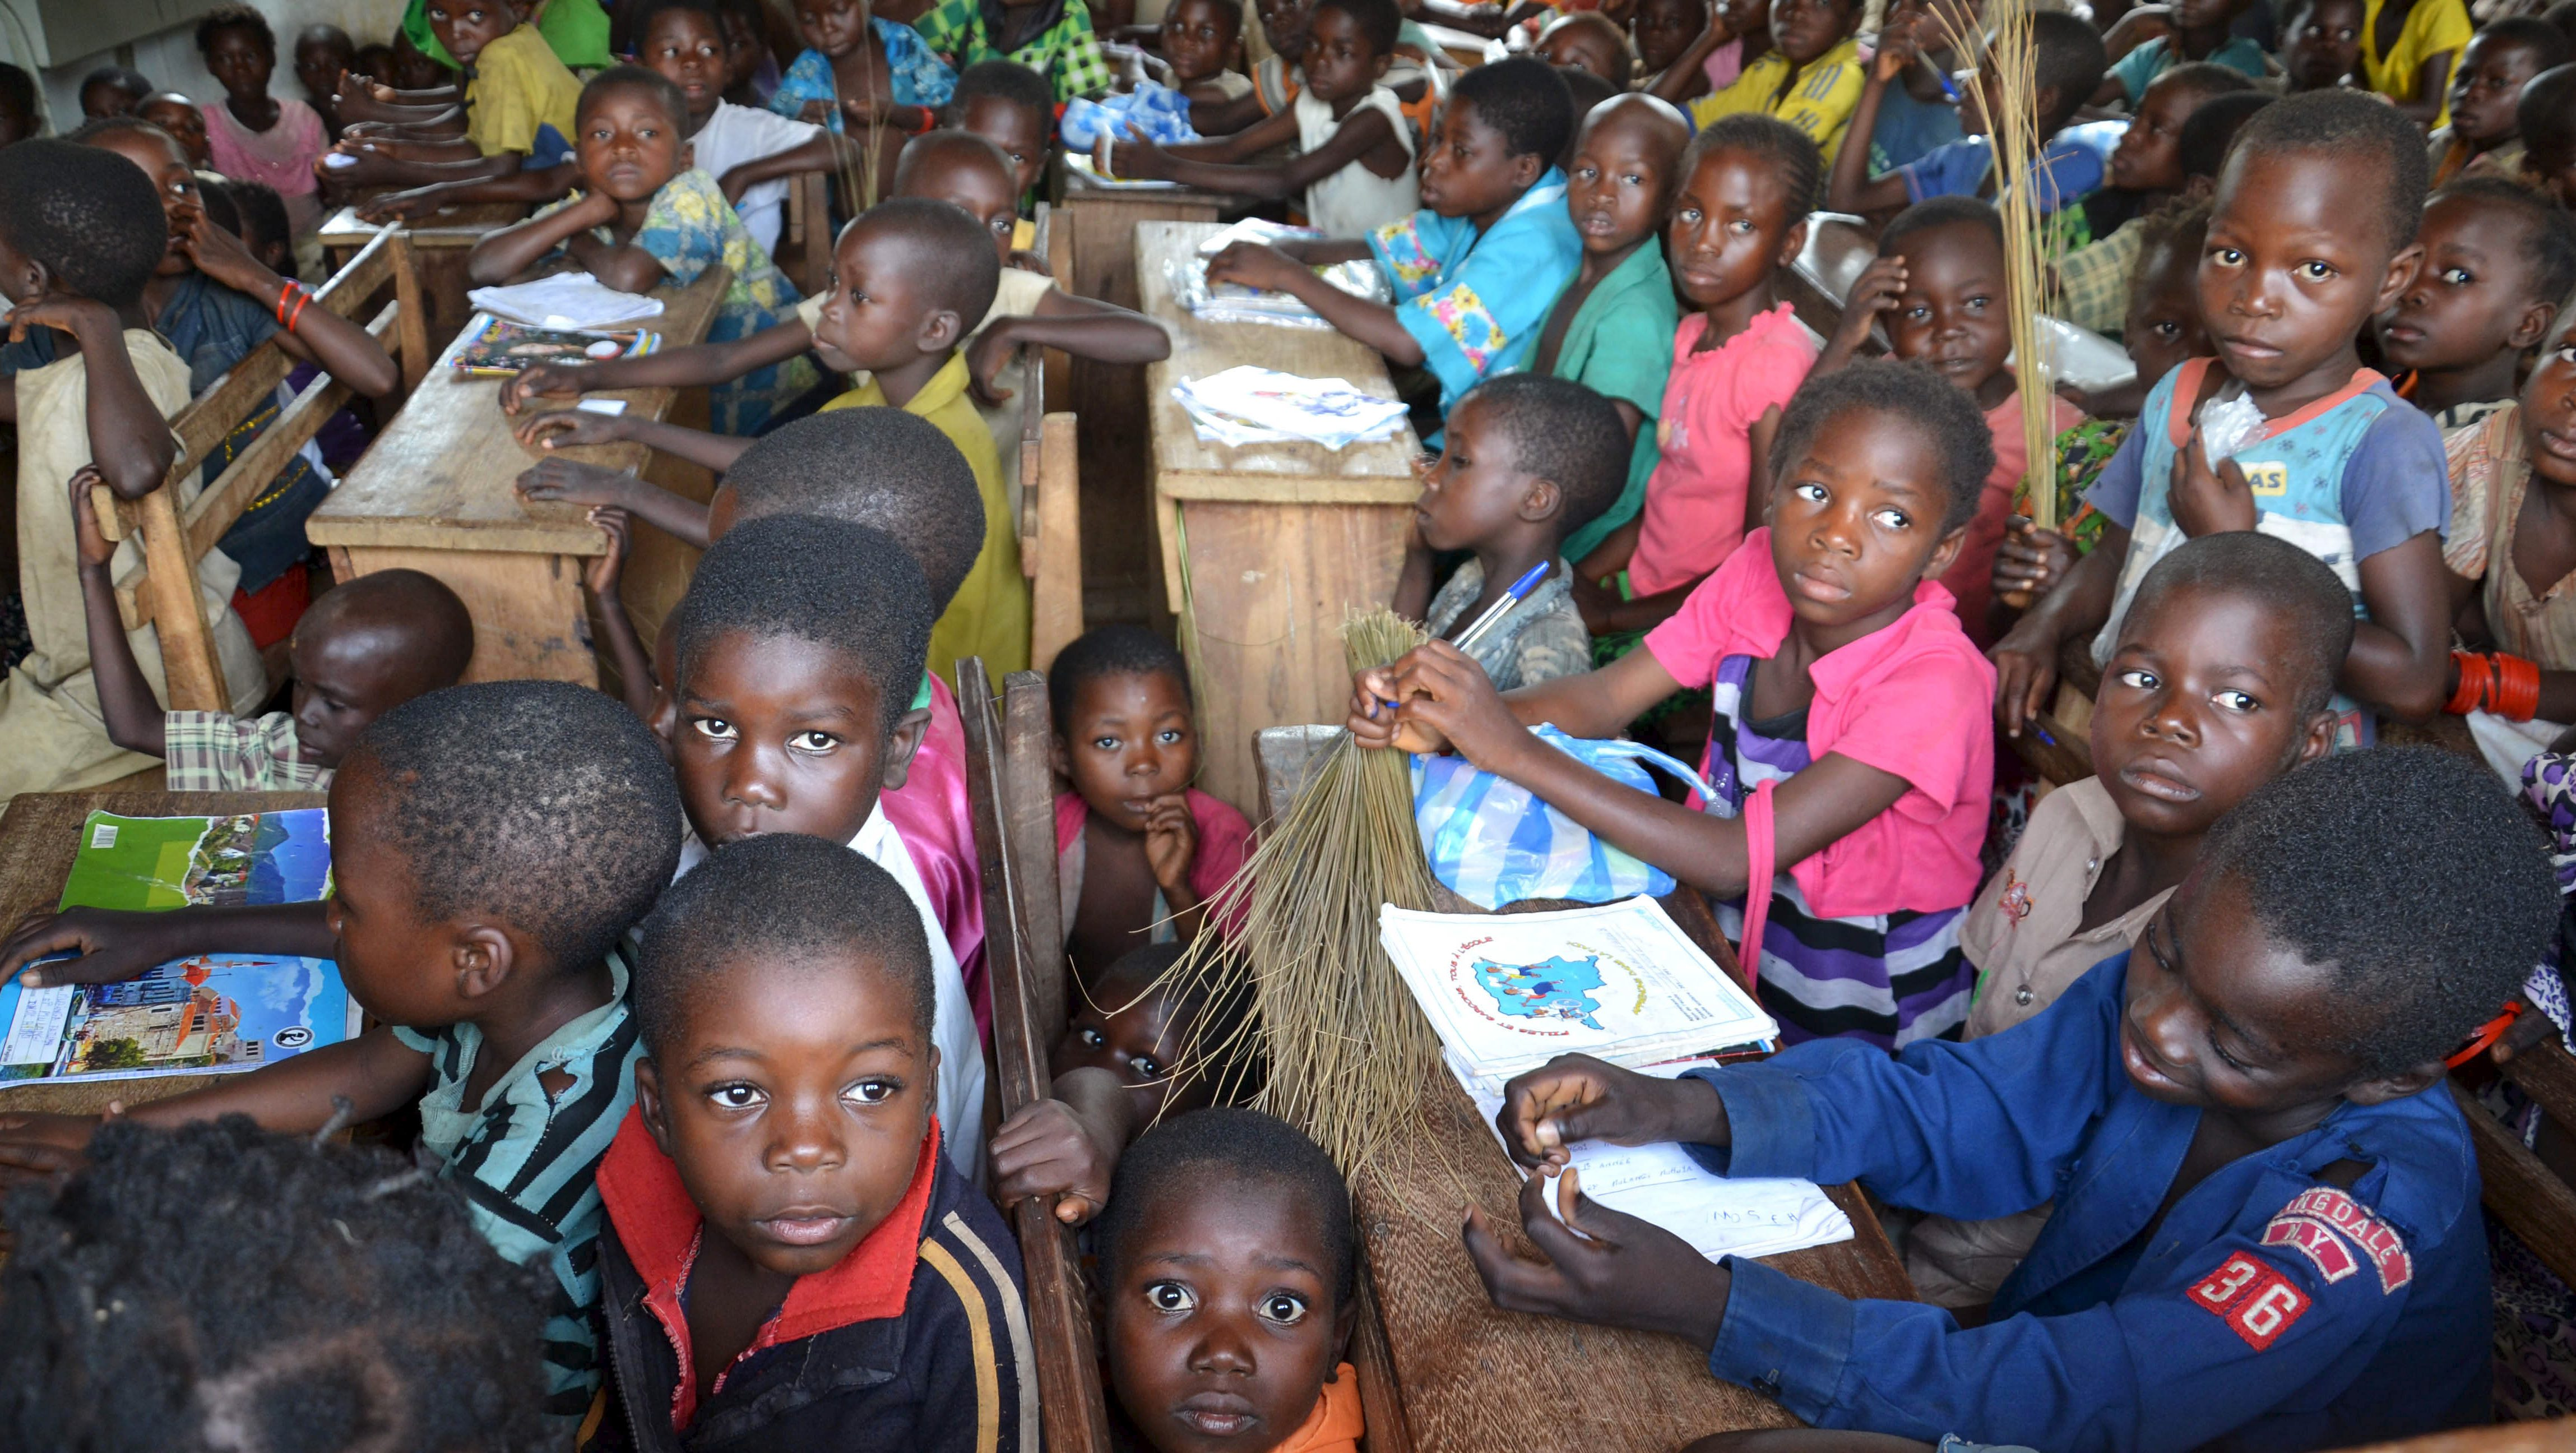 Children from the Bantu and Pygmy communities attend a class at a school in Muhuya, in southeastern Democratic Republic of the Congo